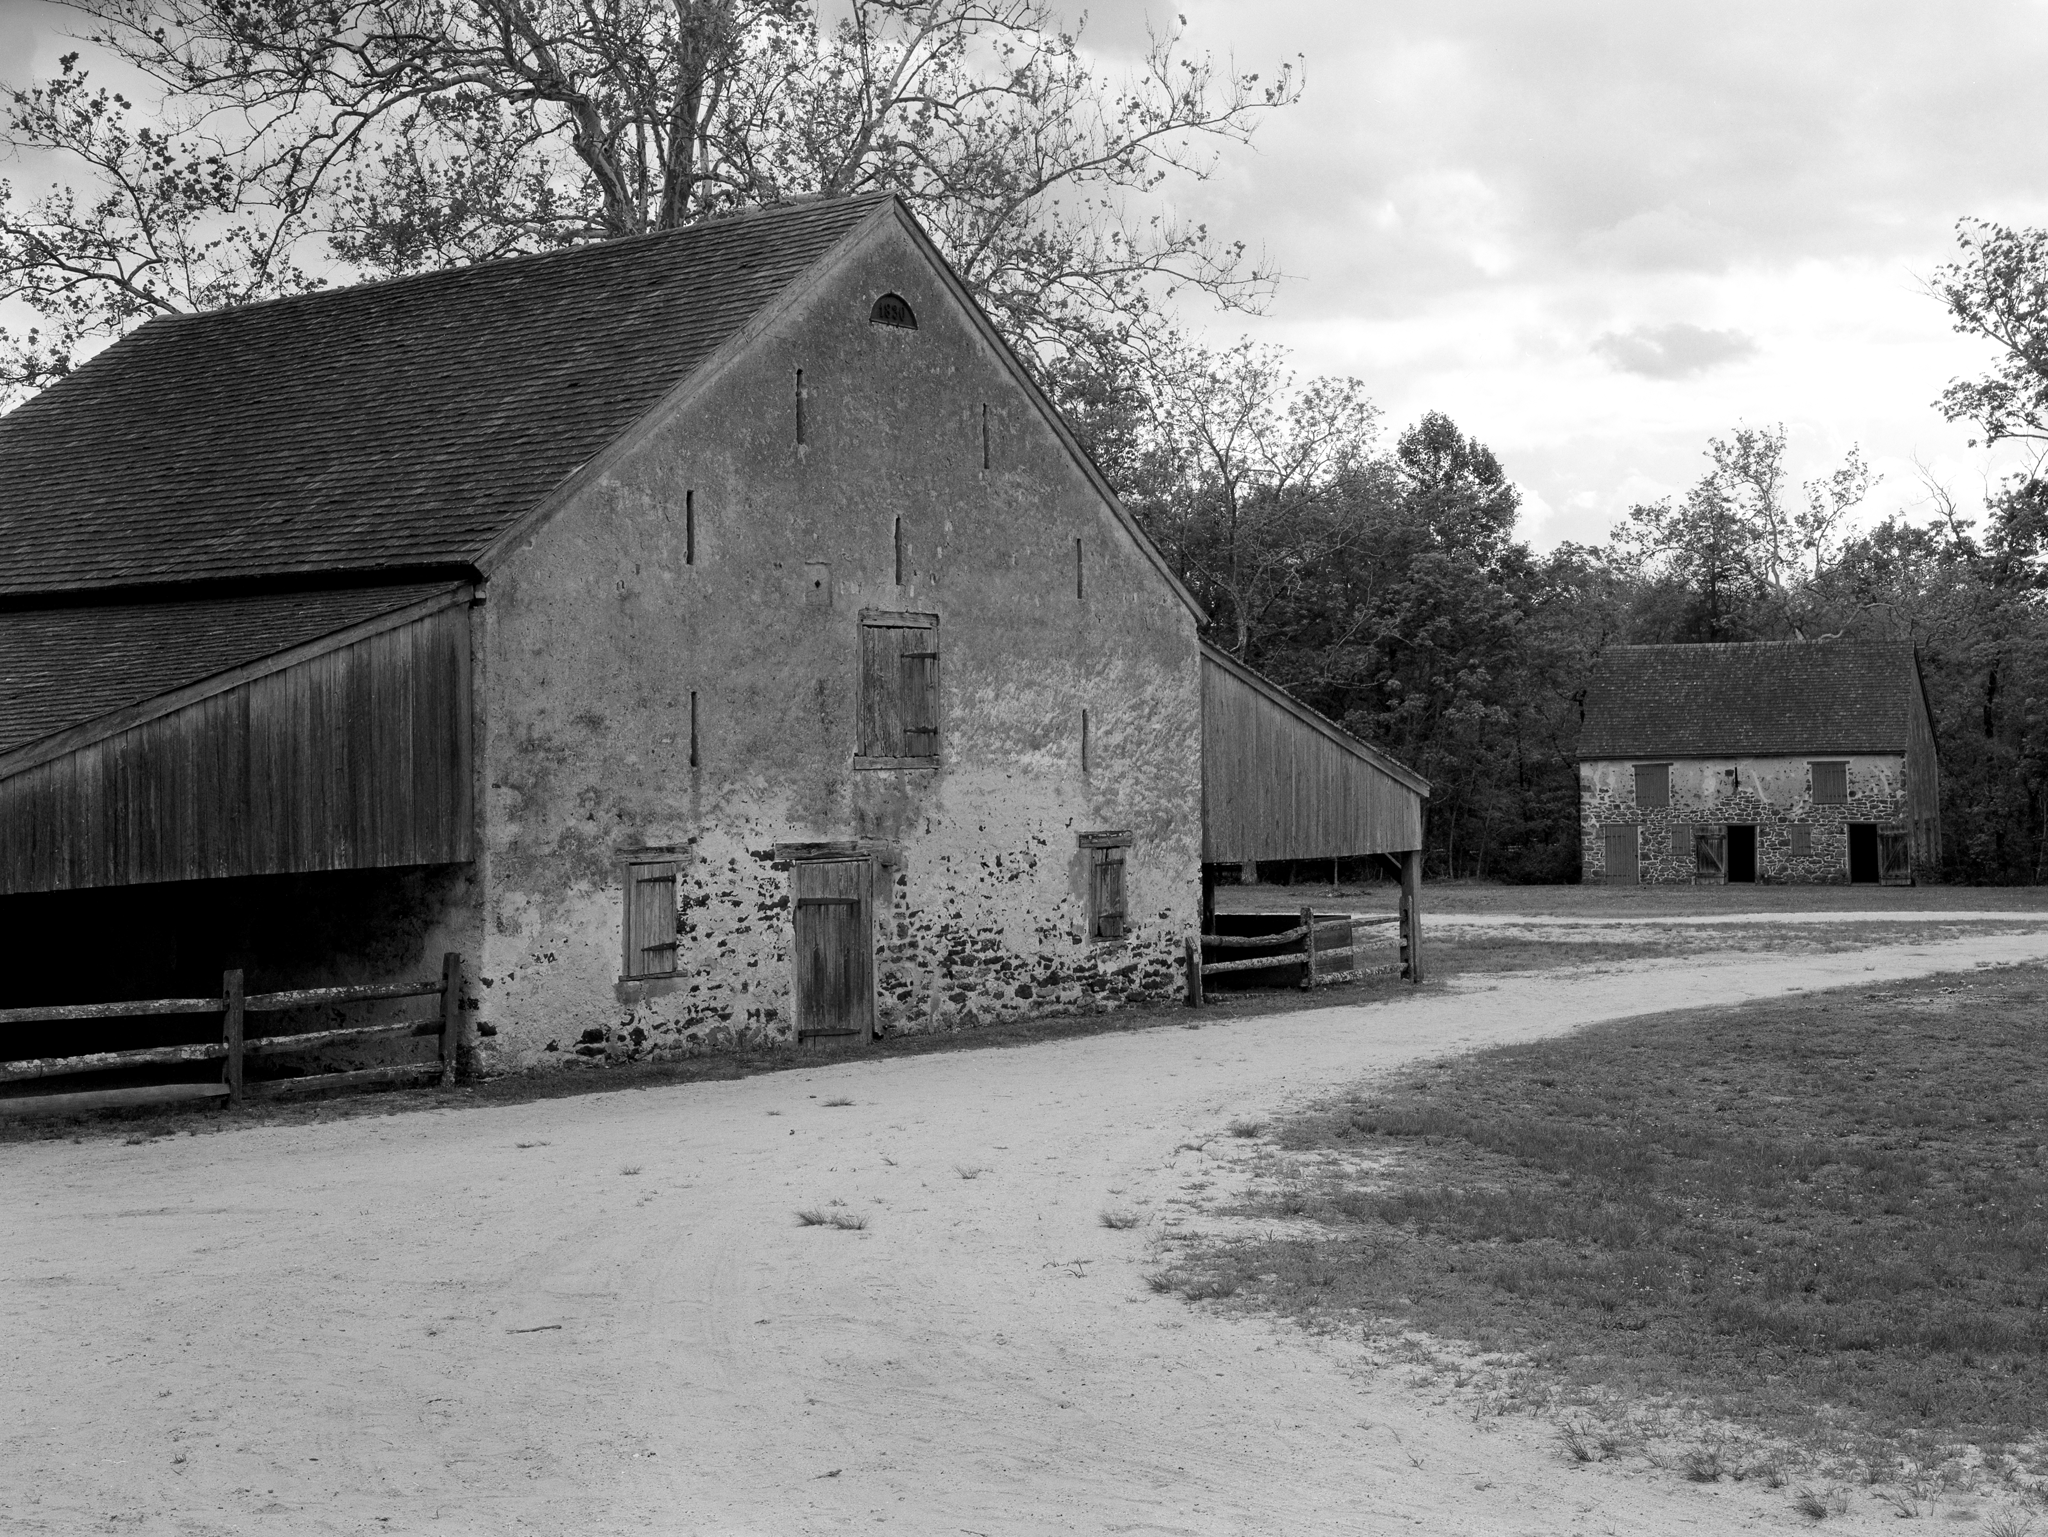 4x5_for_365_project_0151_Batsto_Village_barns.png